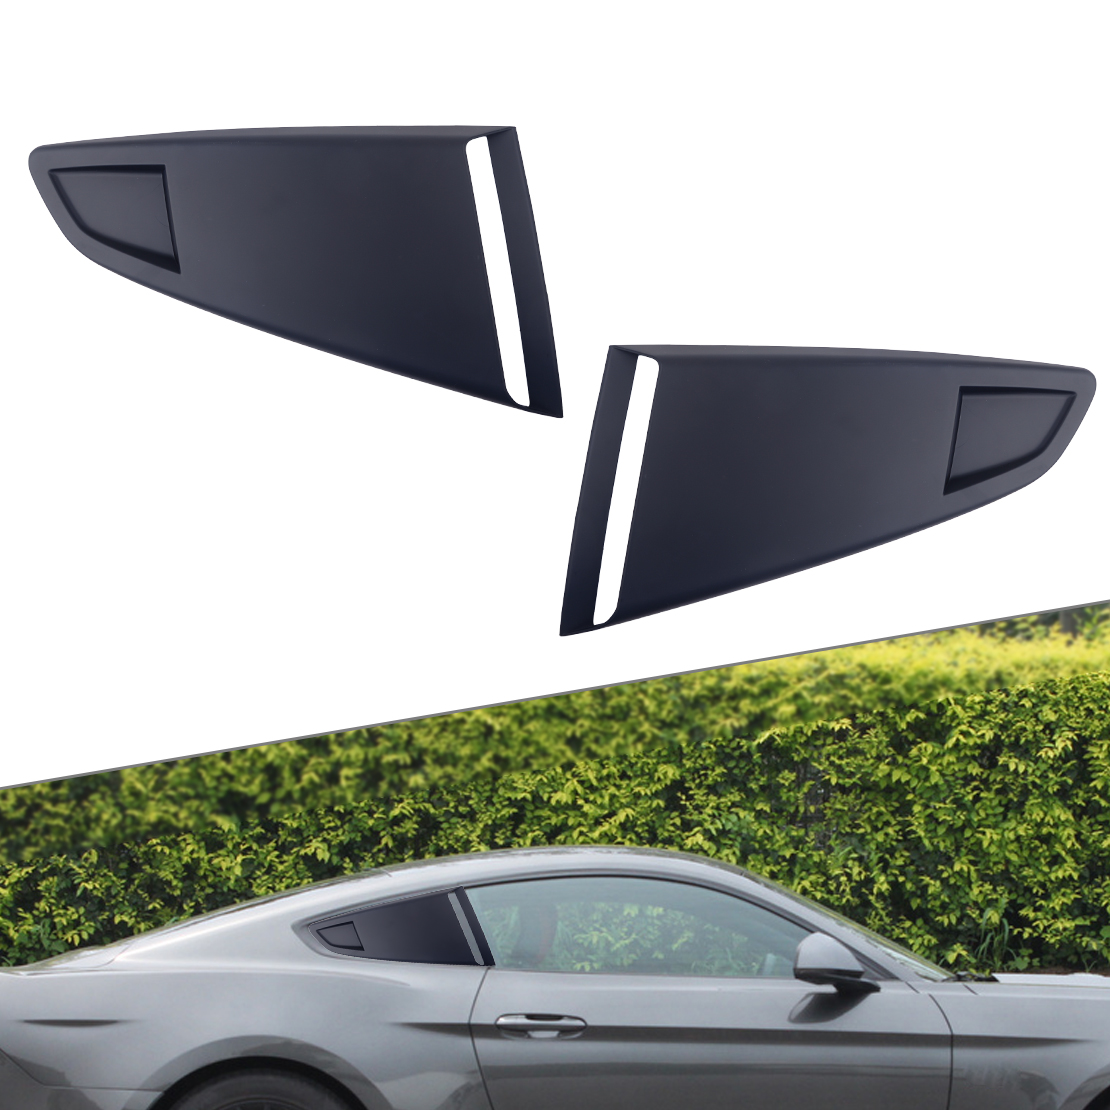 DWCX 1Pair Plastic Car Window Quarter Rear Louver Side Vent Scoop Cover Black Fit For <font><b>Ford</b></font> <font><b>Mustang</b></font> <font><b>2015</b></font> 2016 2017 2018 image